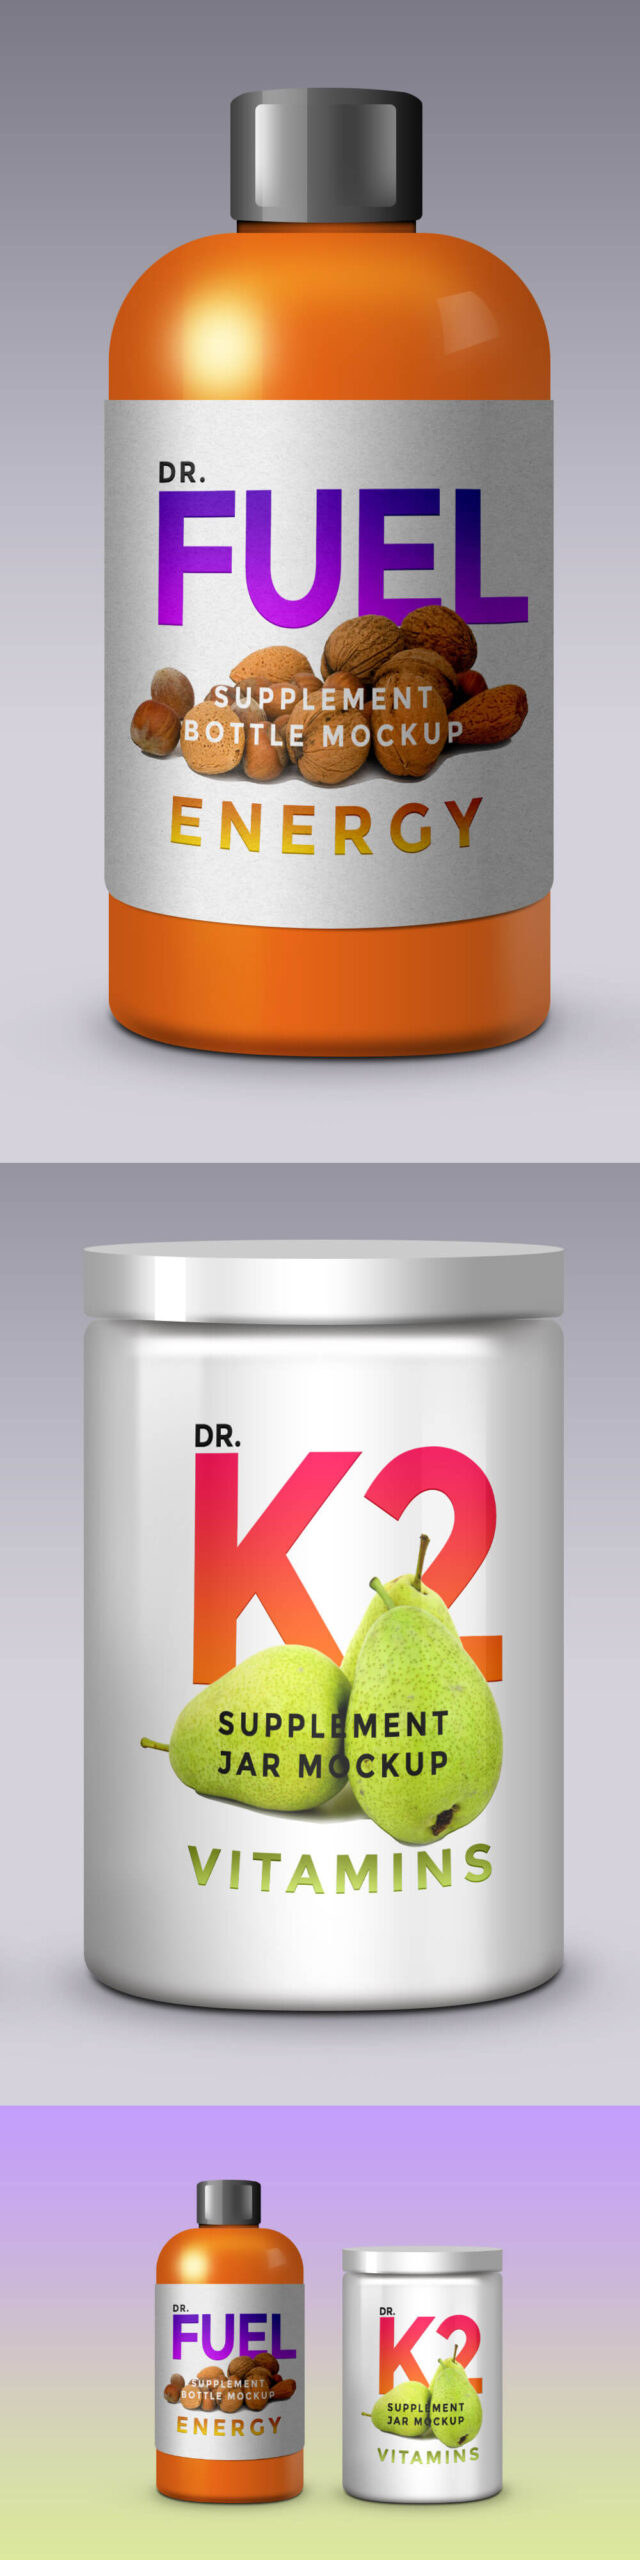 Free Supplement Product Packaging Mockup PSD Templates (1)